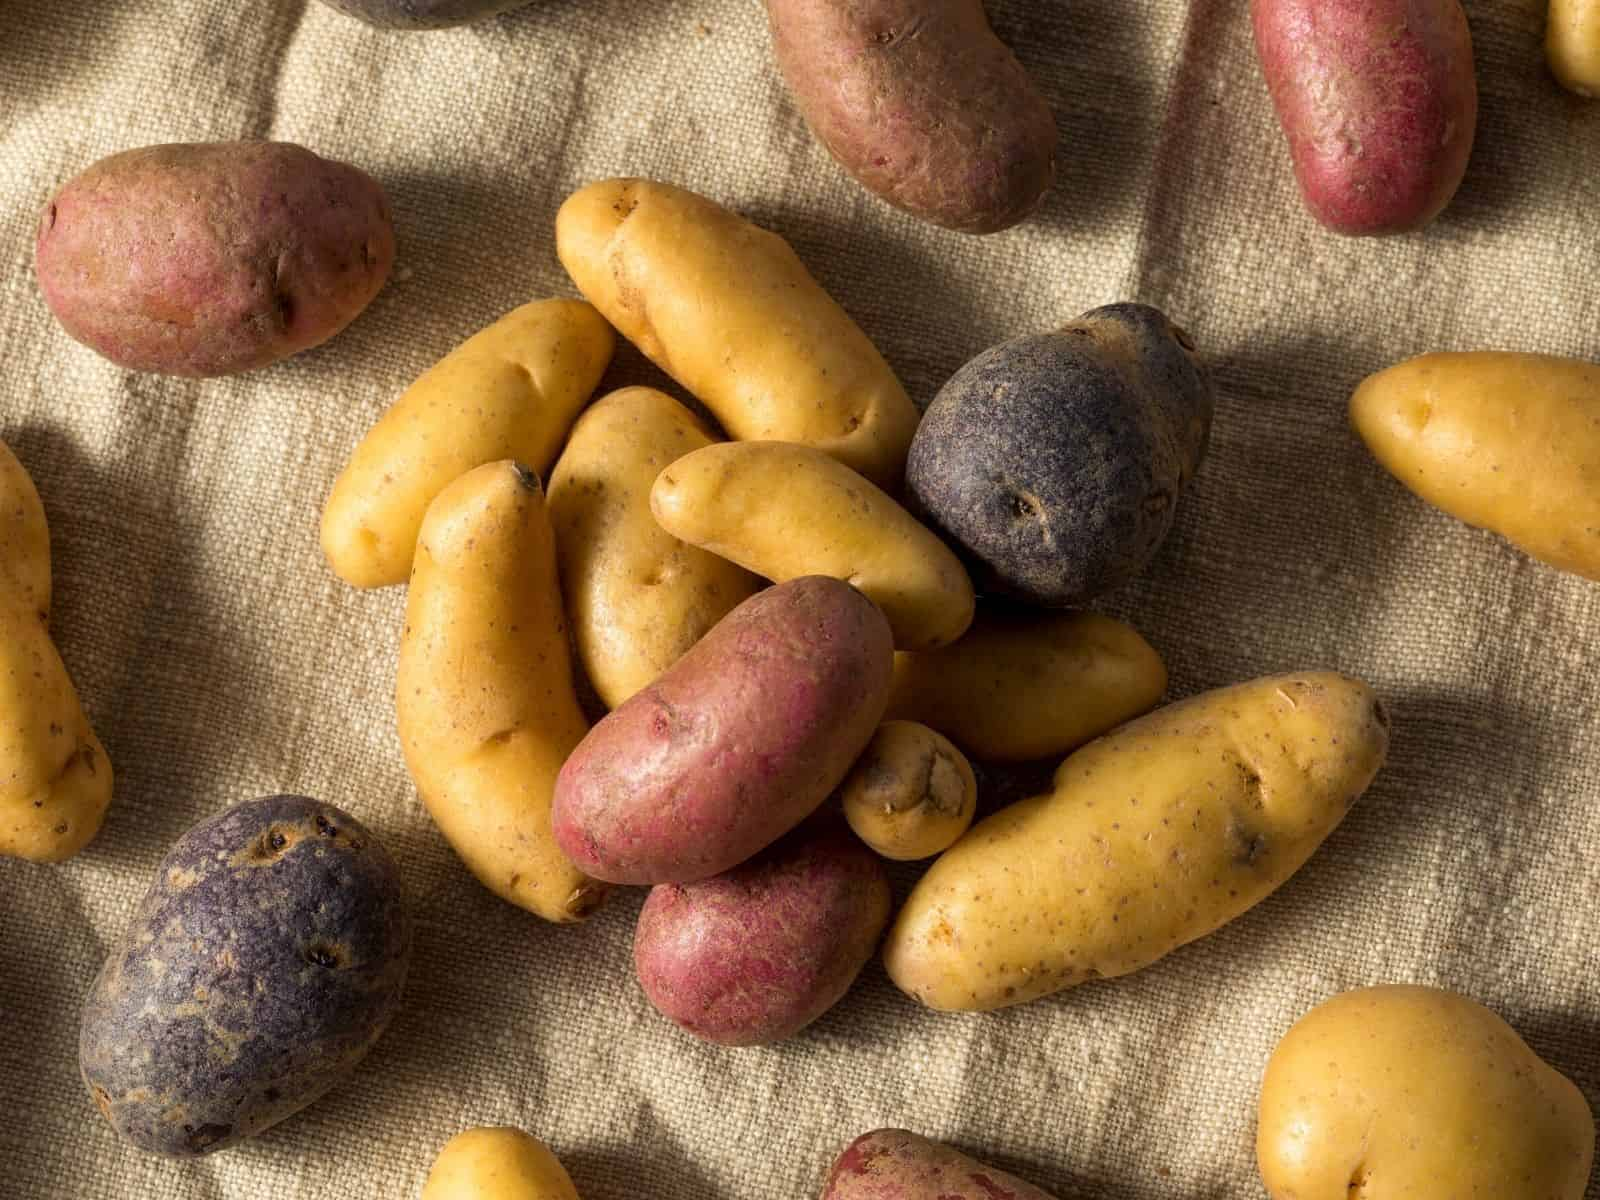 red purple yellow fingerling potatoes on table.